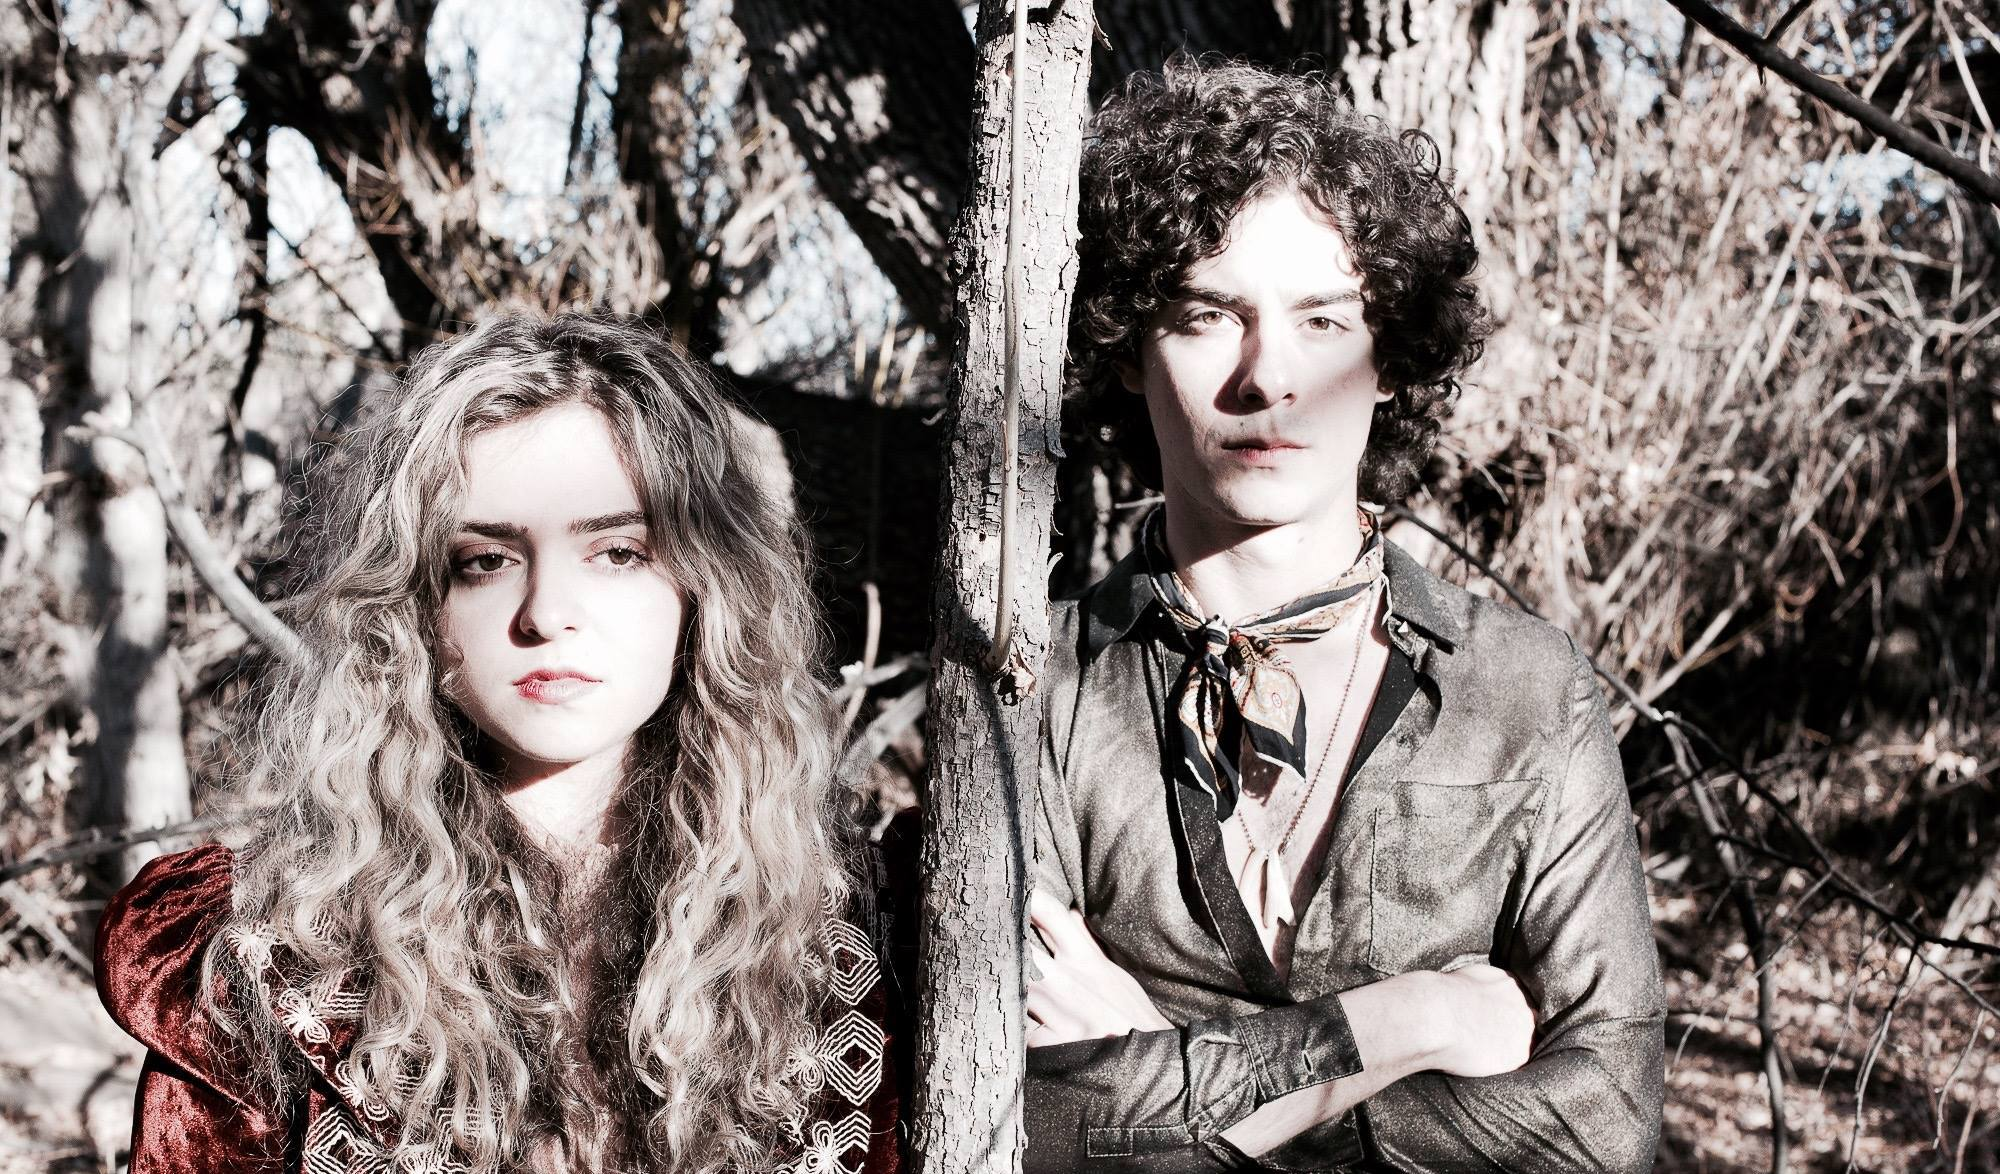 The Velveteers consists of sister-brother duo Demi and John Demitro (Photo: Sierra Voss Photography)